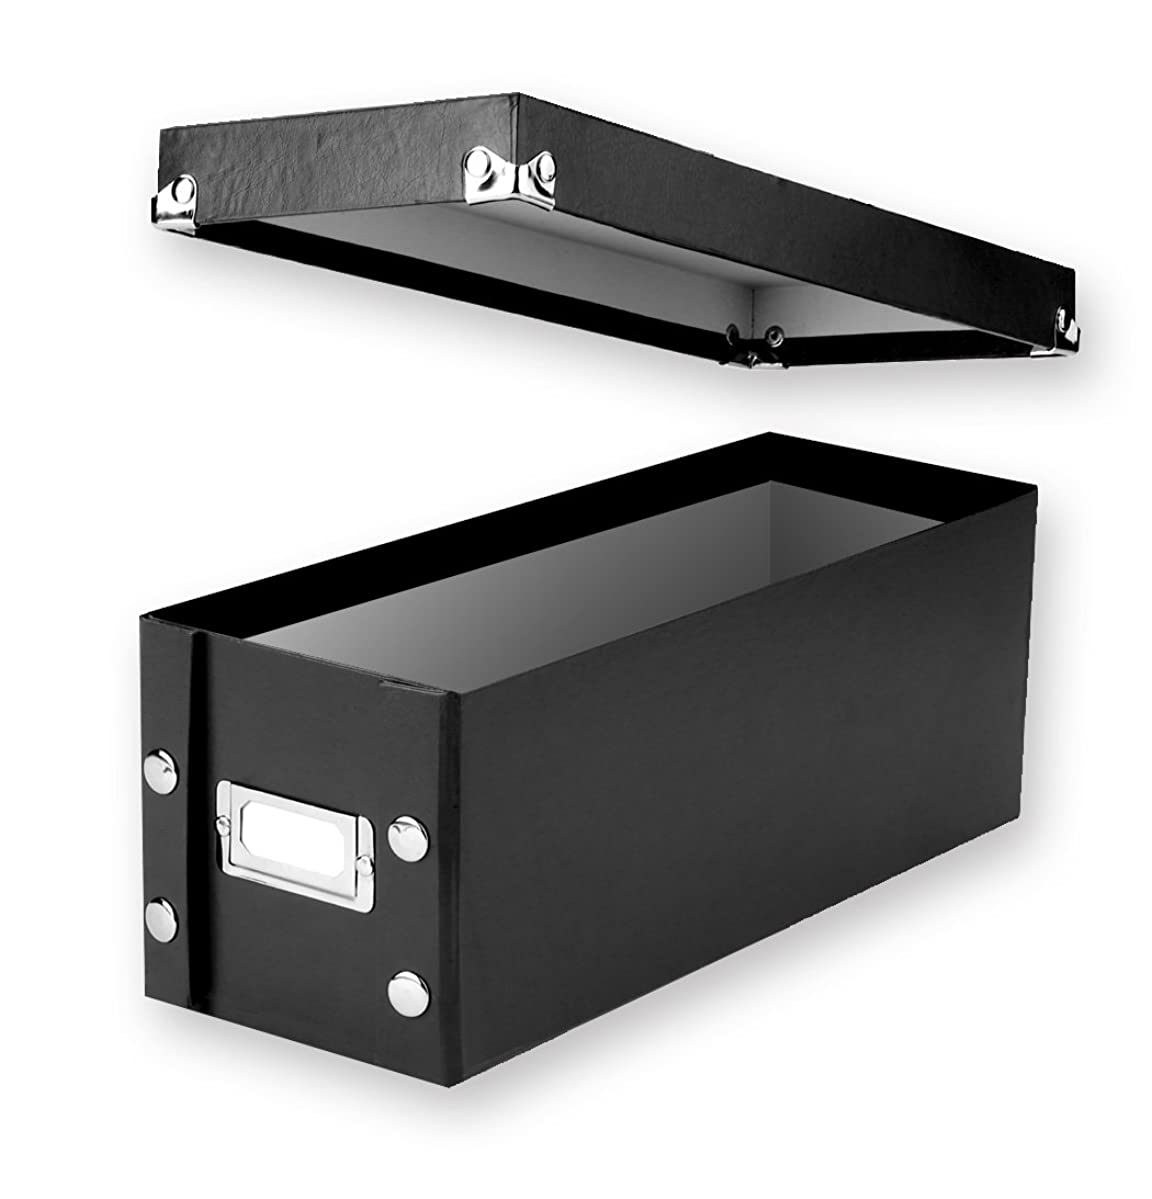 Snap-N-Store CD Storage Boxes, Set of 2 Boxes, Black (SNS01617)